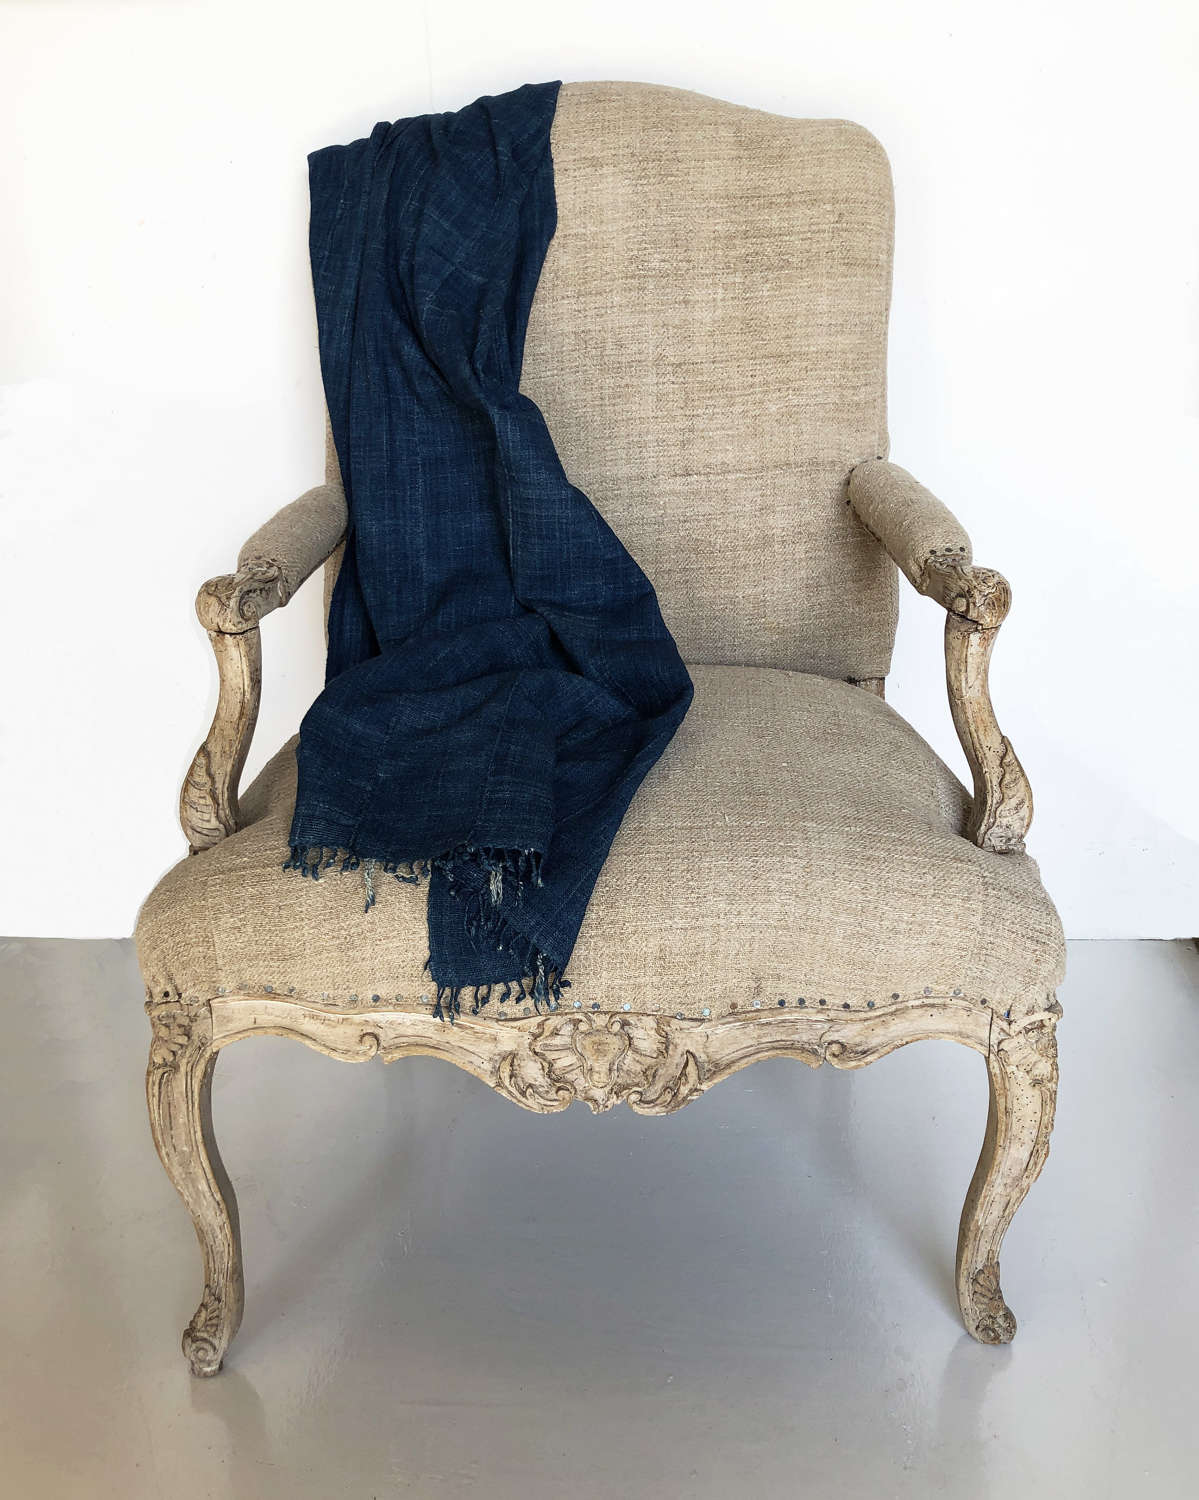 18th c Louis XV Fauteuil with antique hemp upholstery - circa 1720